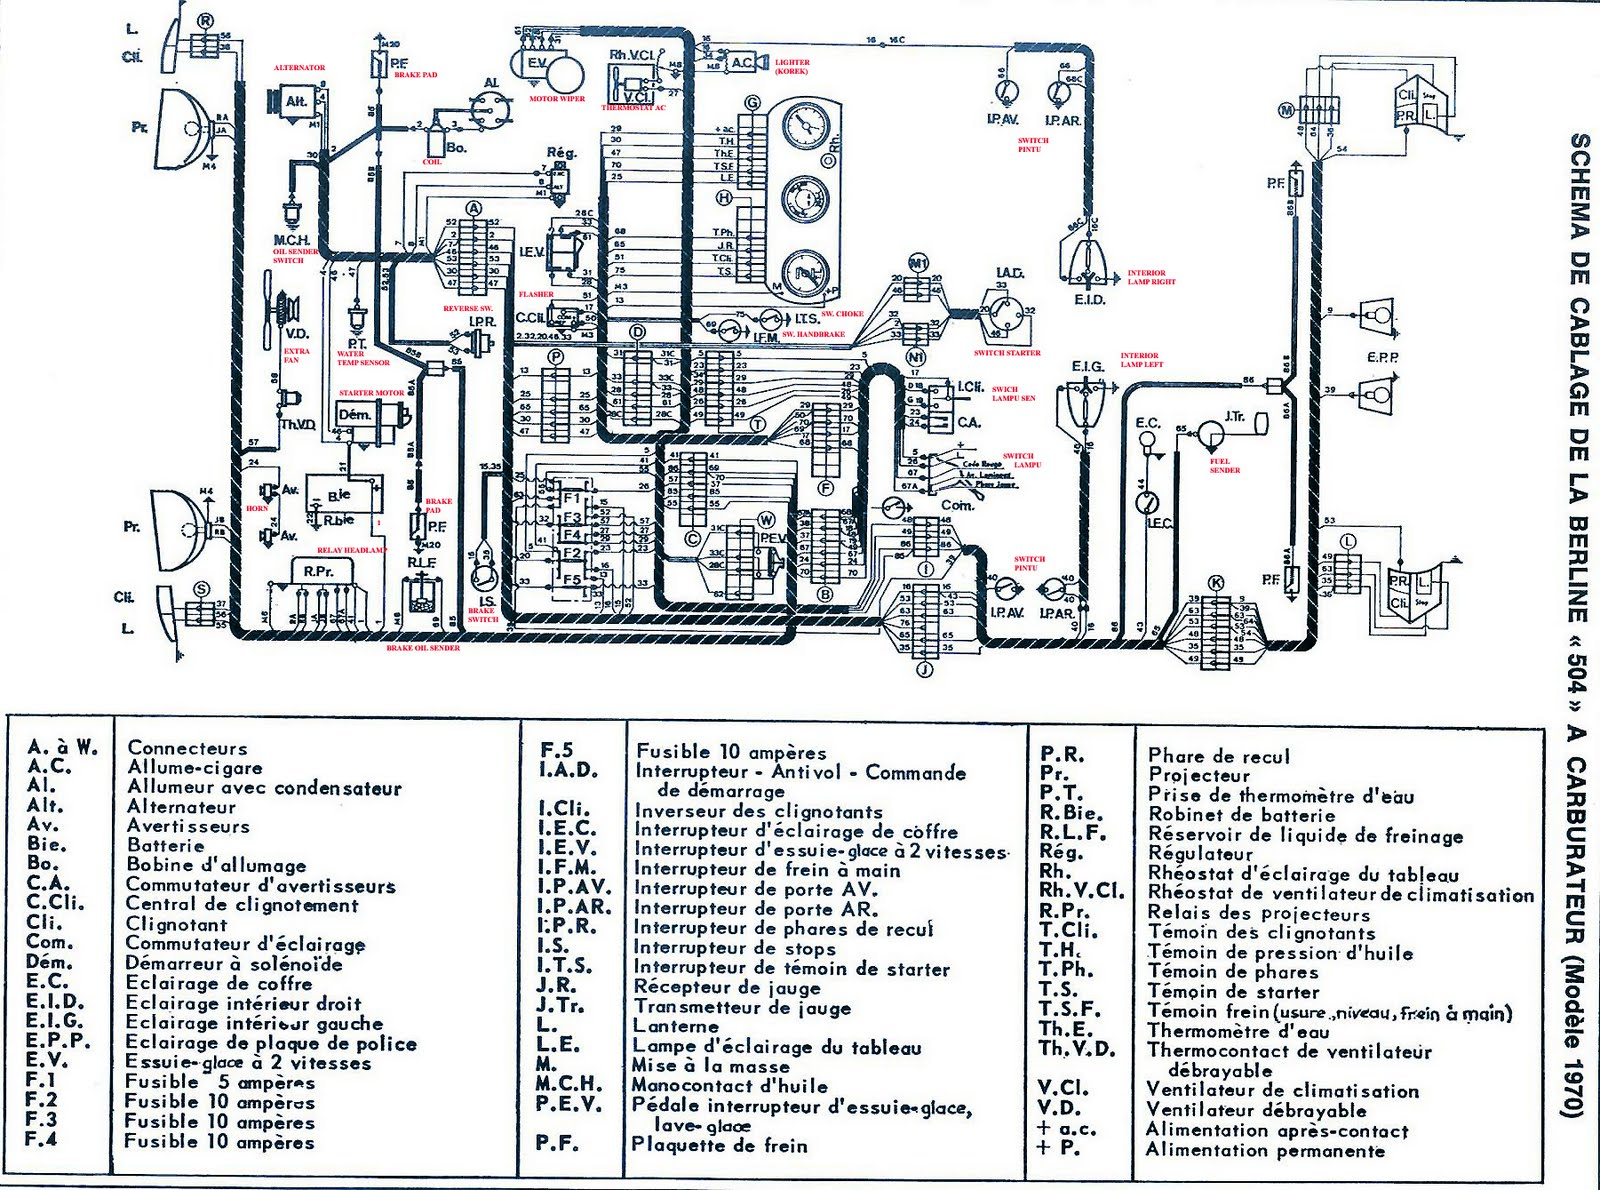 WRG-9165] Peugeot 505 Wiring Diagram on light wiring parts, light roof diagram, light body diagram, light bulbs diagram, parking lights diagram, 2 lights 2 switches diagram, light switch, light transmission diagram, light thermostat diagram, 1994 mazda b4000 fuse panel diagram, http diagram, 2004 acura tl fuse box diagram, 2004 pontiac grand prix fuse box diagram, 2007 ford f-150 fuse box diagram, circuit diagram, light installation diagram, ford bronco fuse box diagram, light bar diagram, light electrical wiring, light electrical diagram,